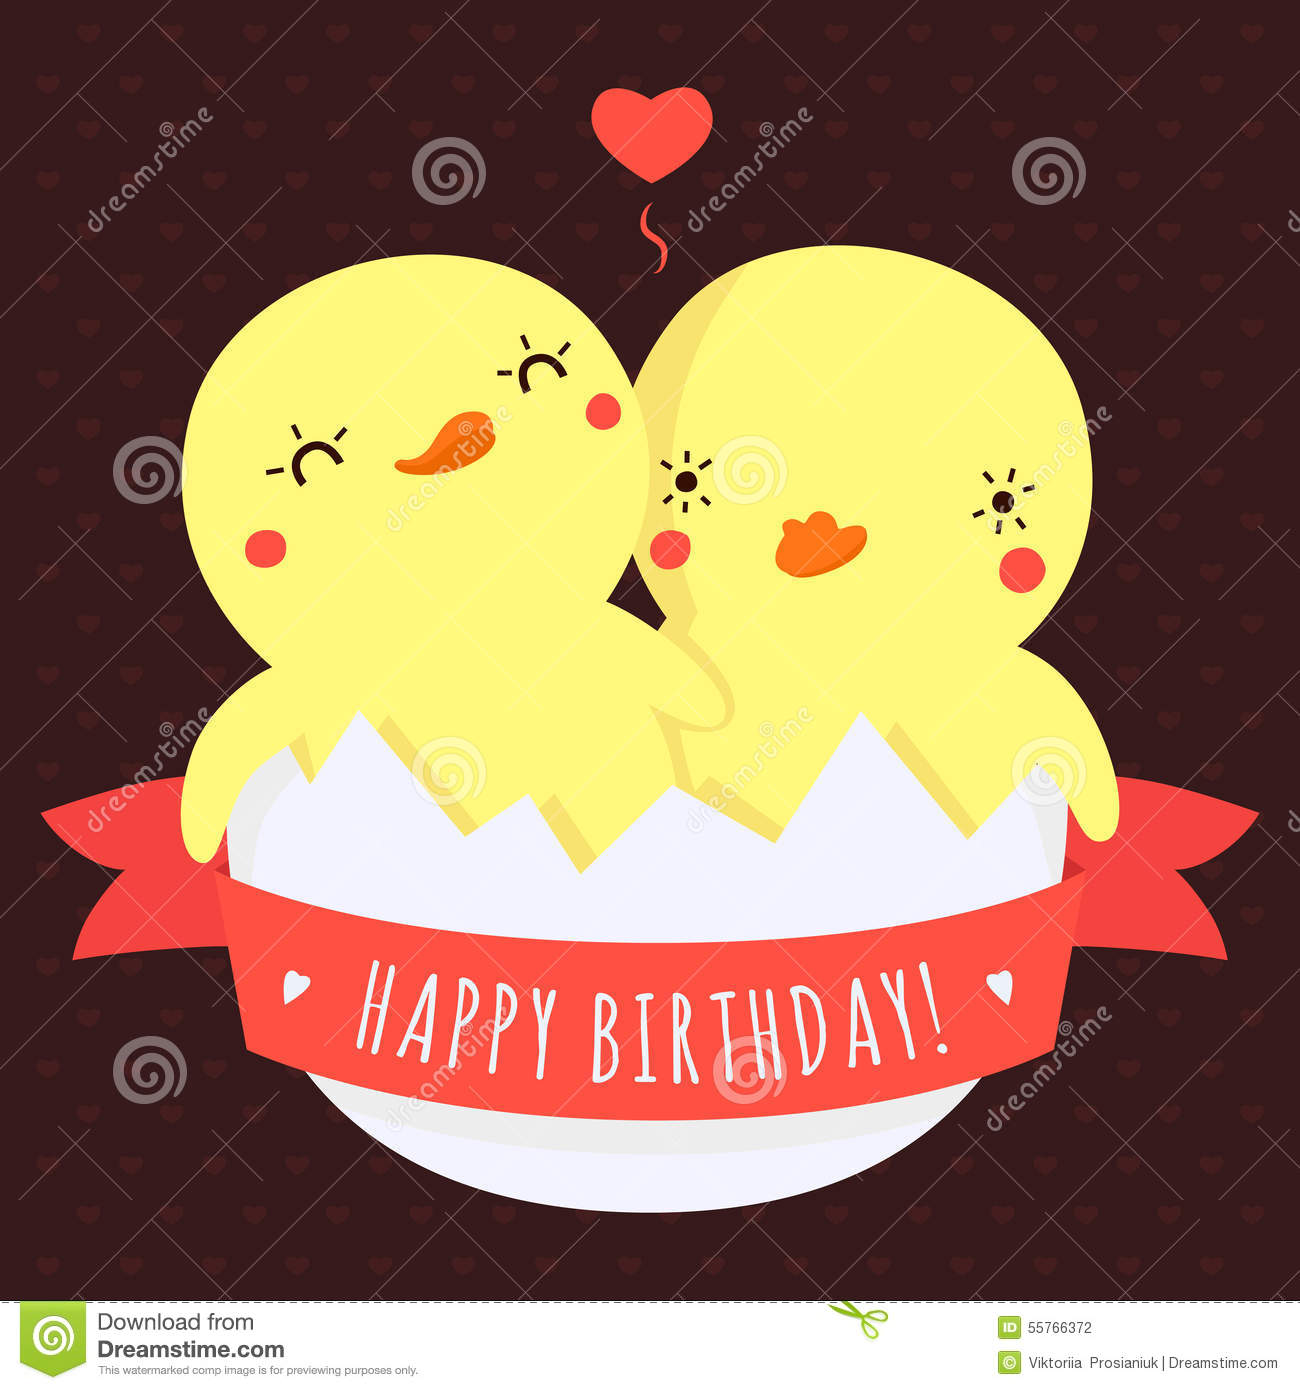 Cute Twins Baby Ducks In Egg Vector Happy Birthday Card And Background With Heart Light Red Pink Ribbon